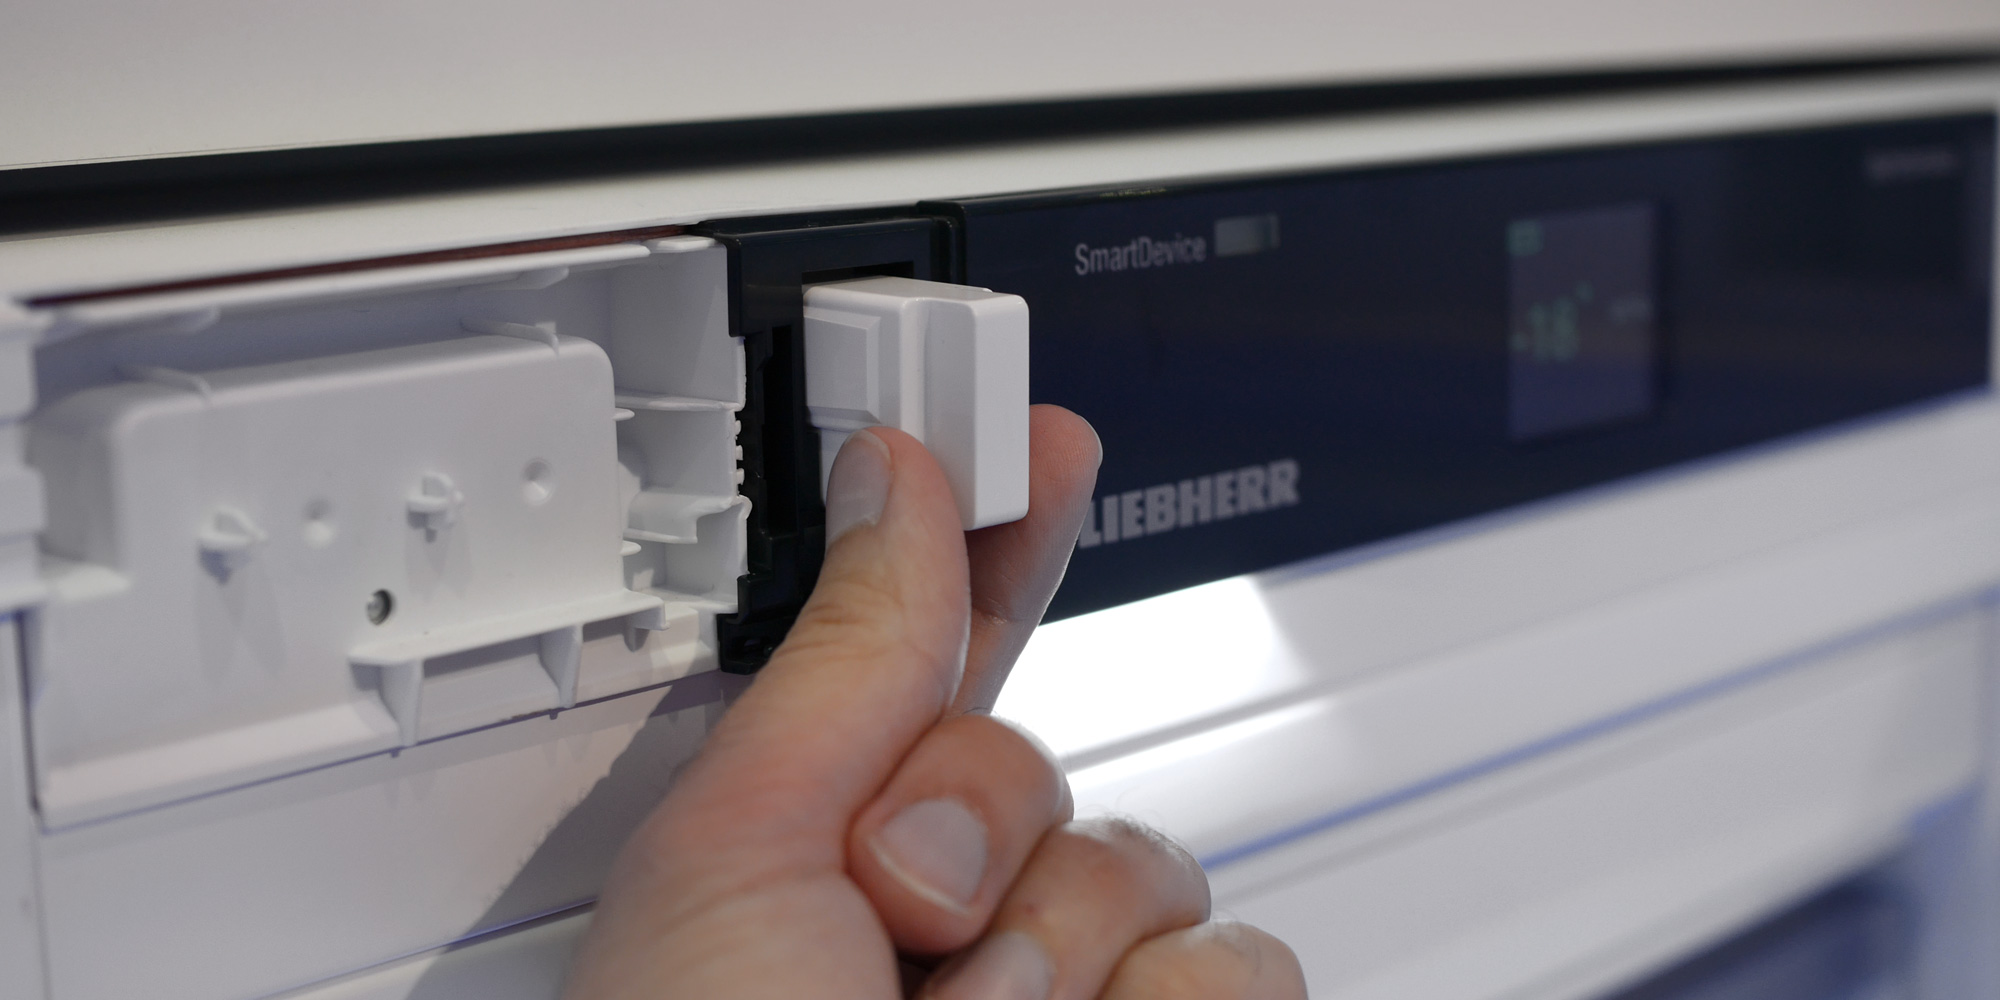 Liebherr S Smart Fridge Add On Is Affordable And Sensible